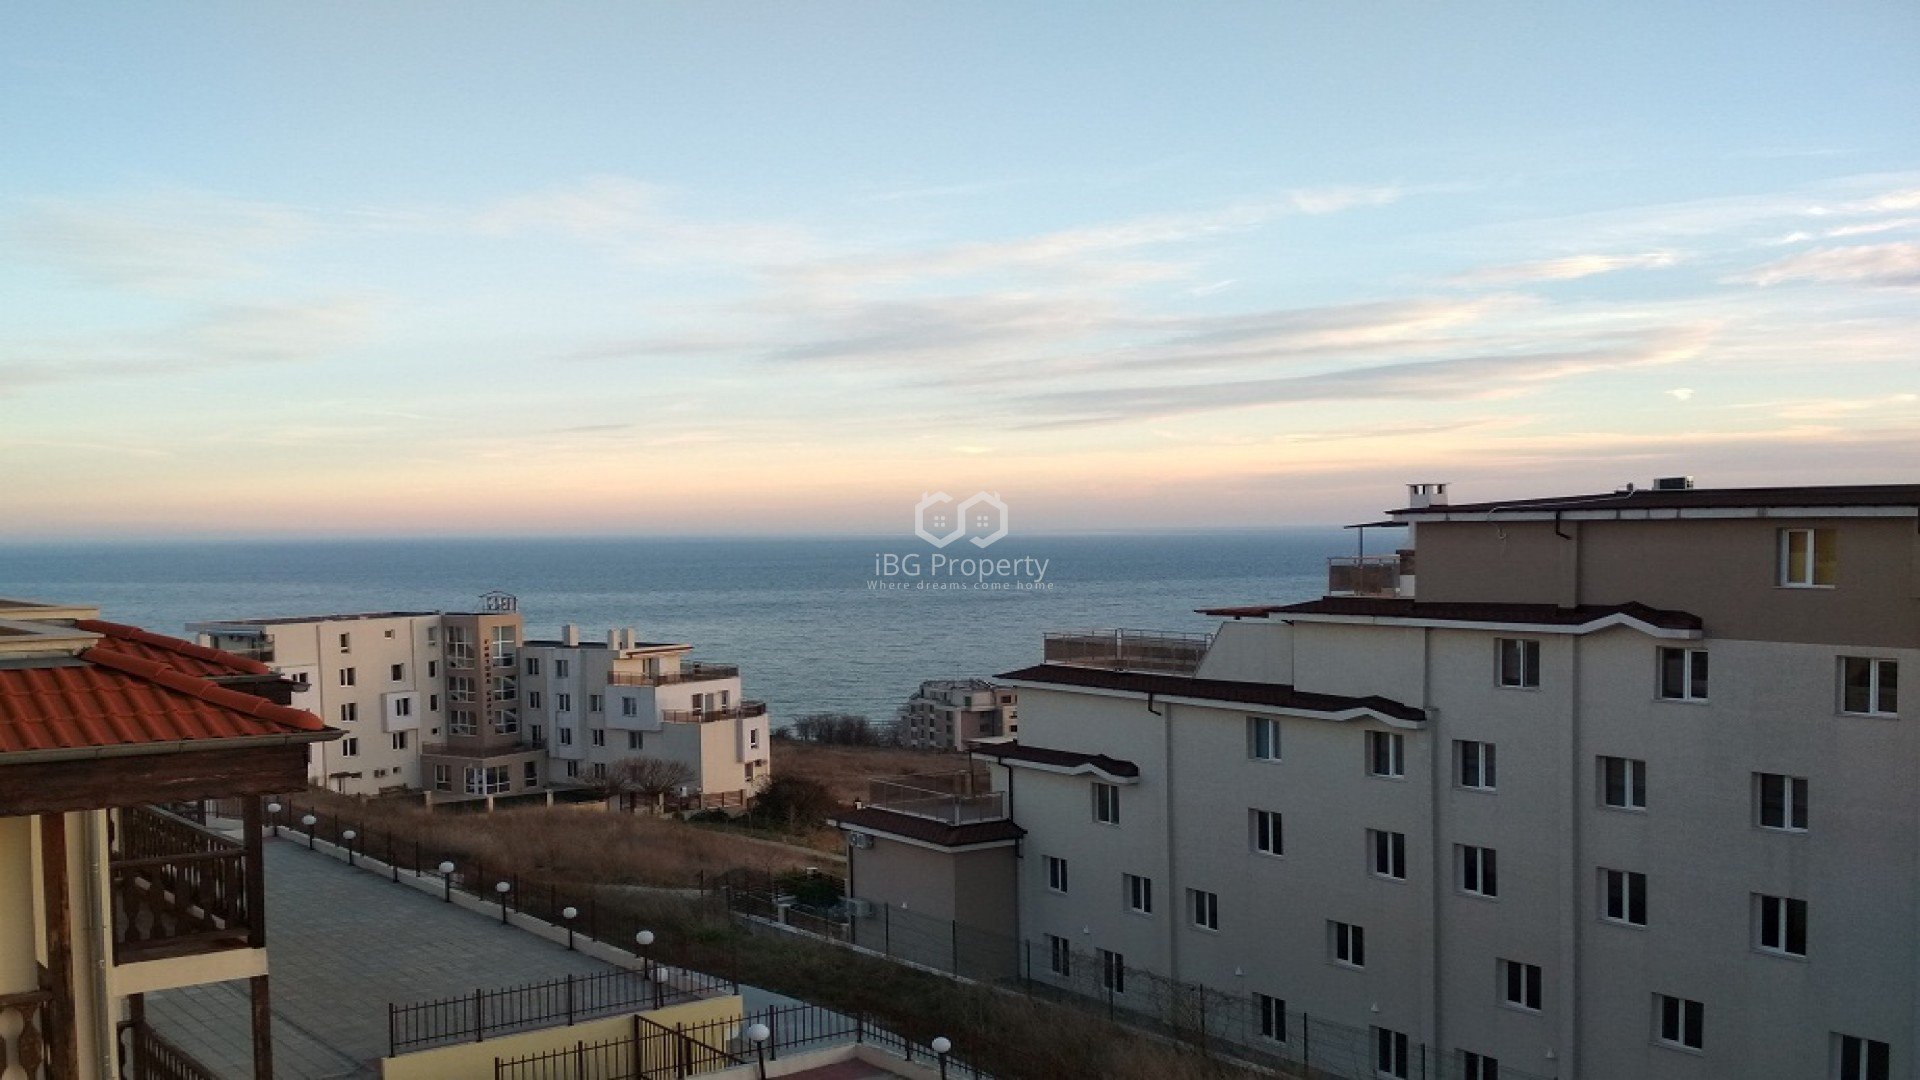 EXCLUSIVE OFFER! One bedroom apartment Byala 64 m2